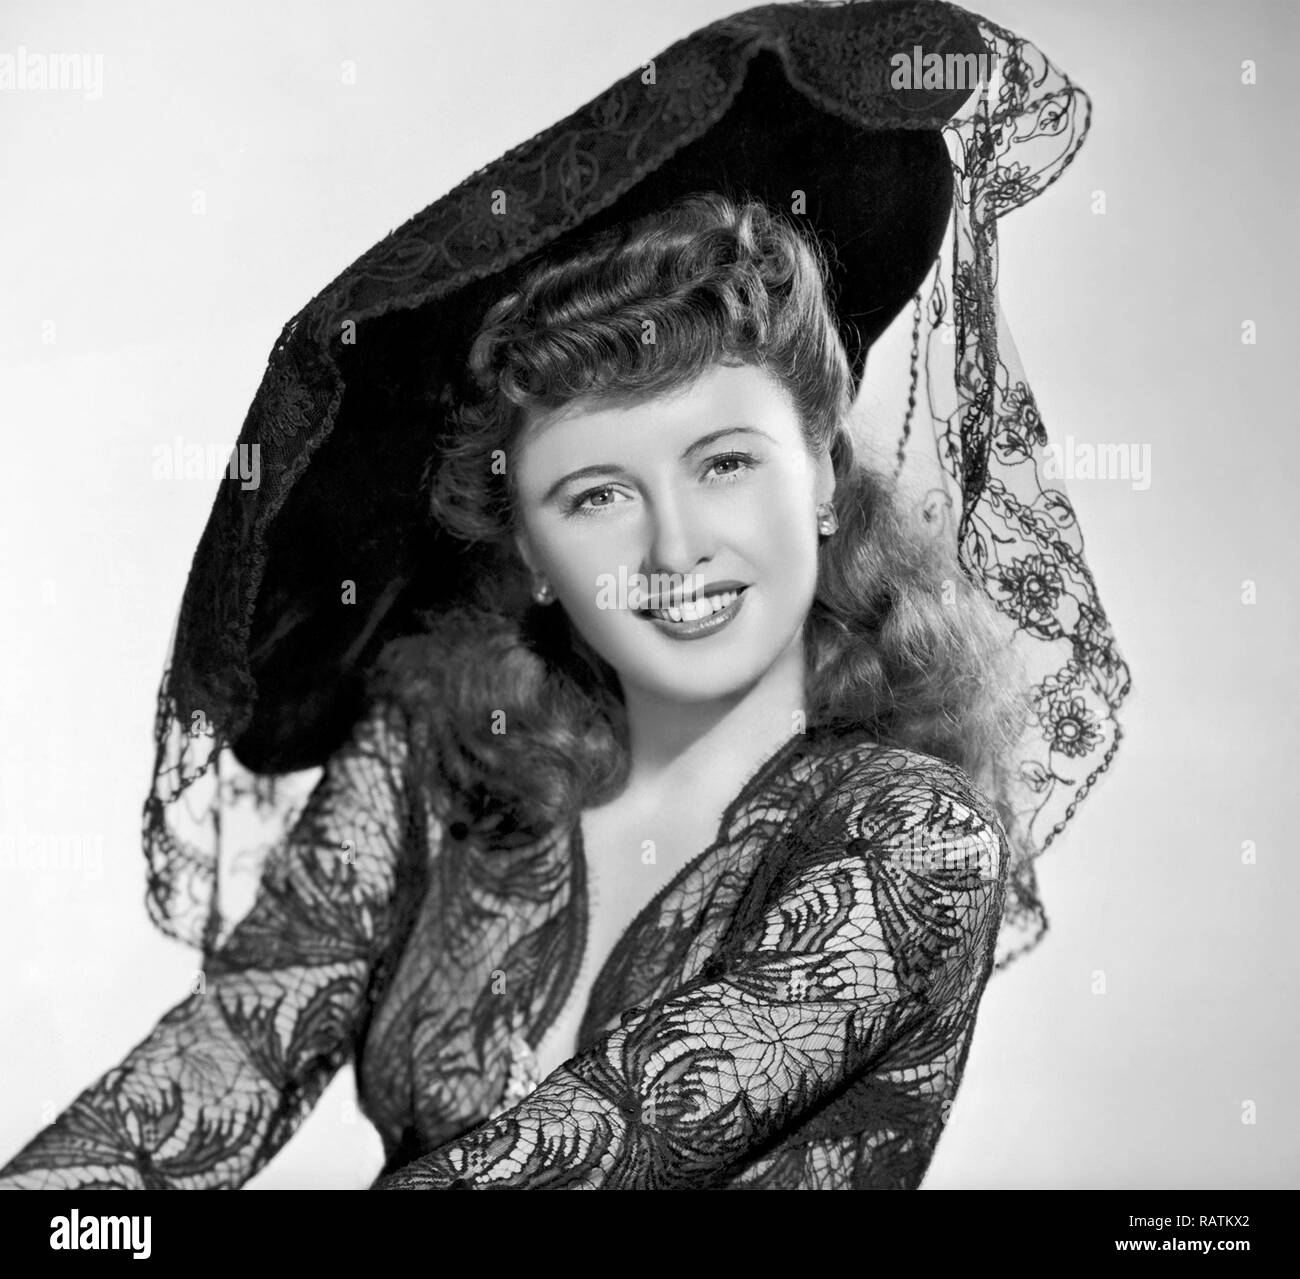 BARBARA STANWYCK (1907-1990) American film actress about 1942 - Stock Image